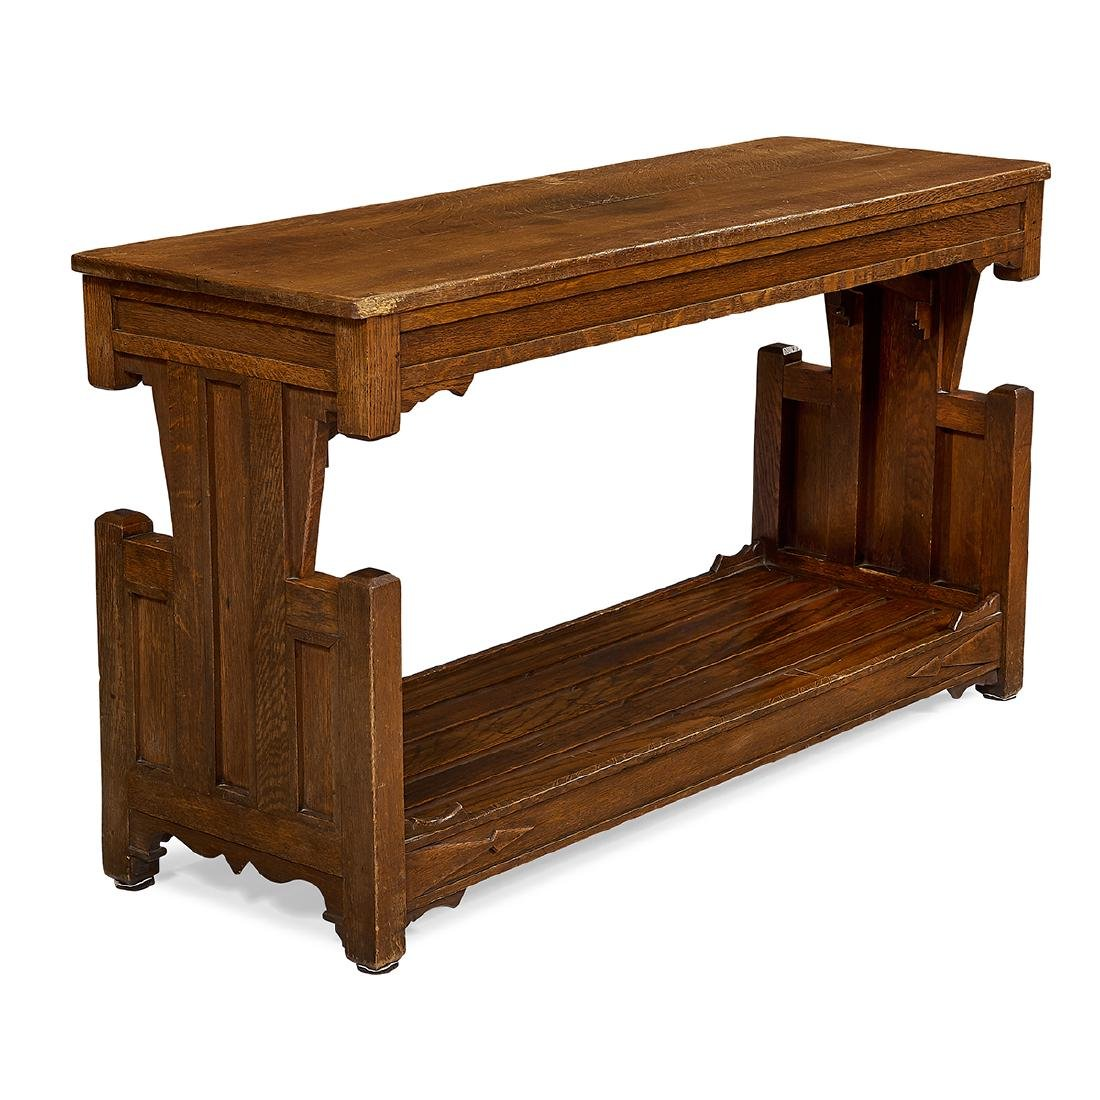 American Arts & Crafts console table